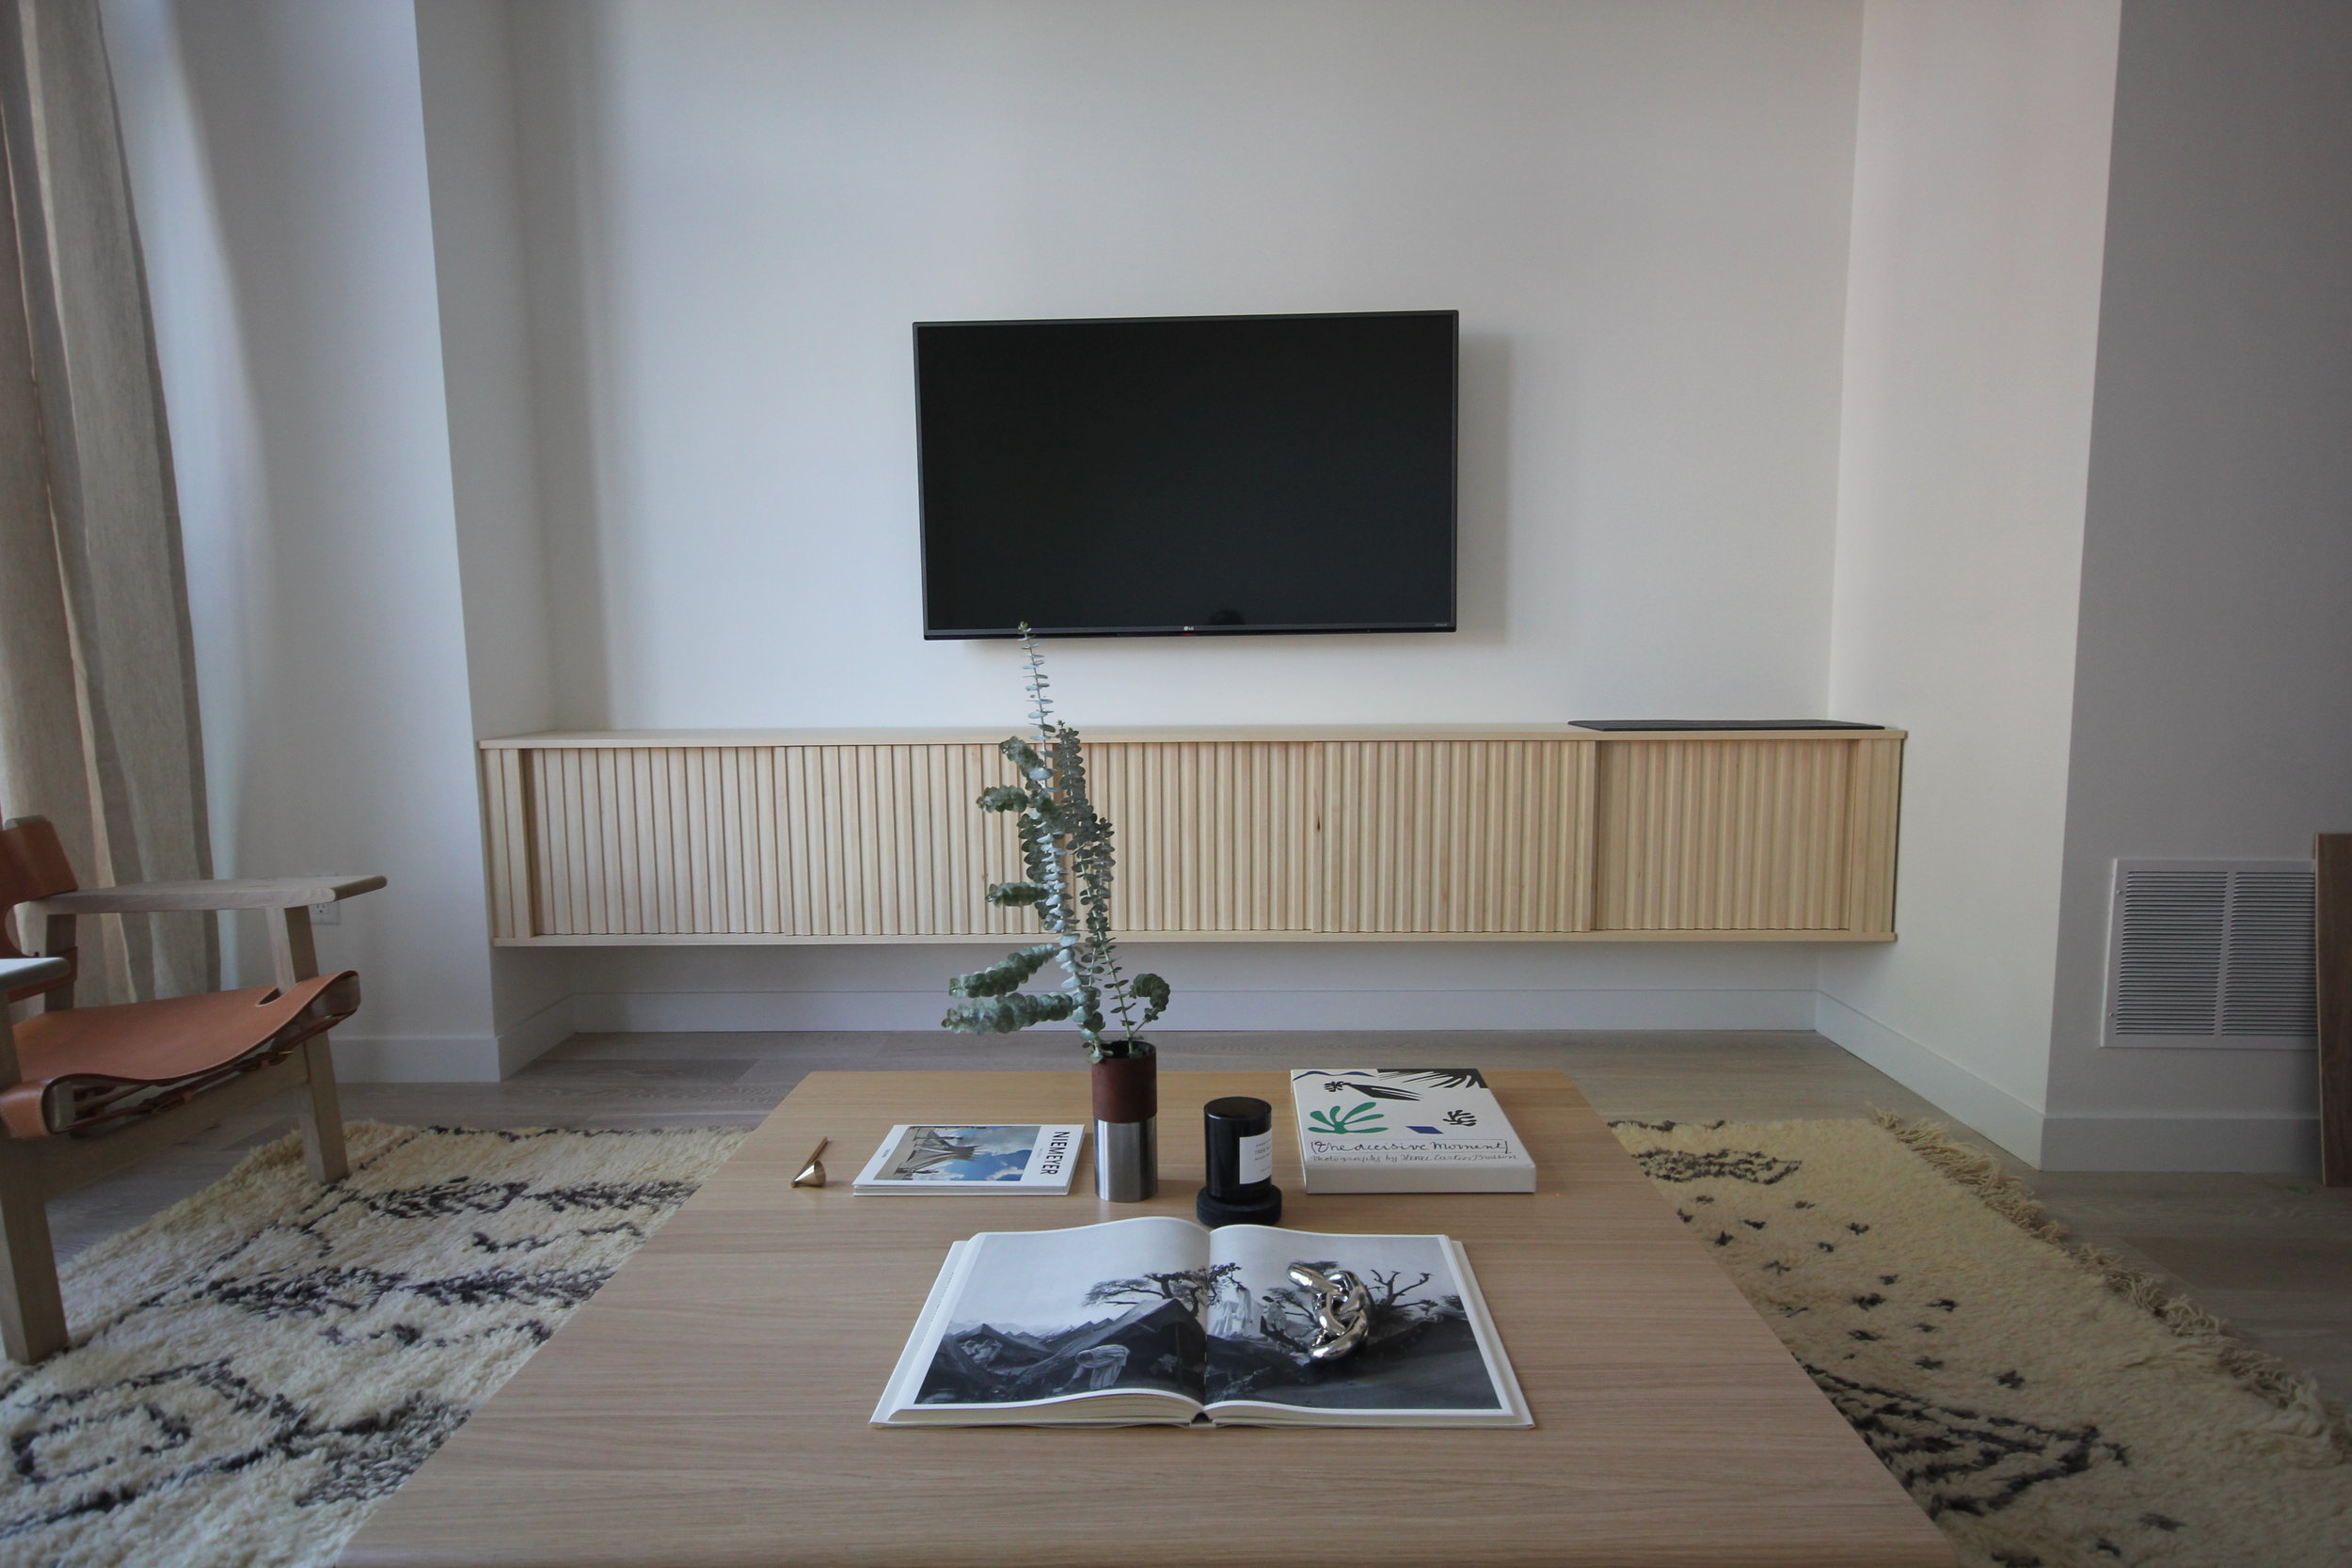 Sitting room-Credenza in Baltic Birch with Slate in lay.